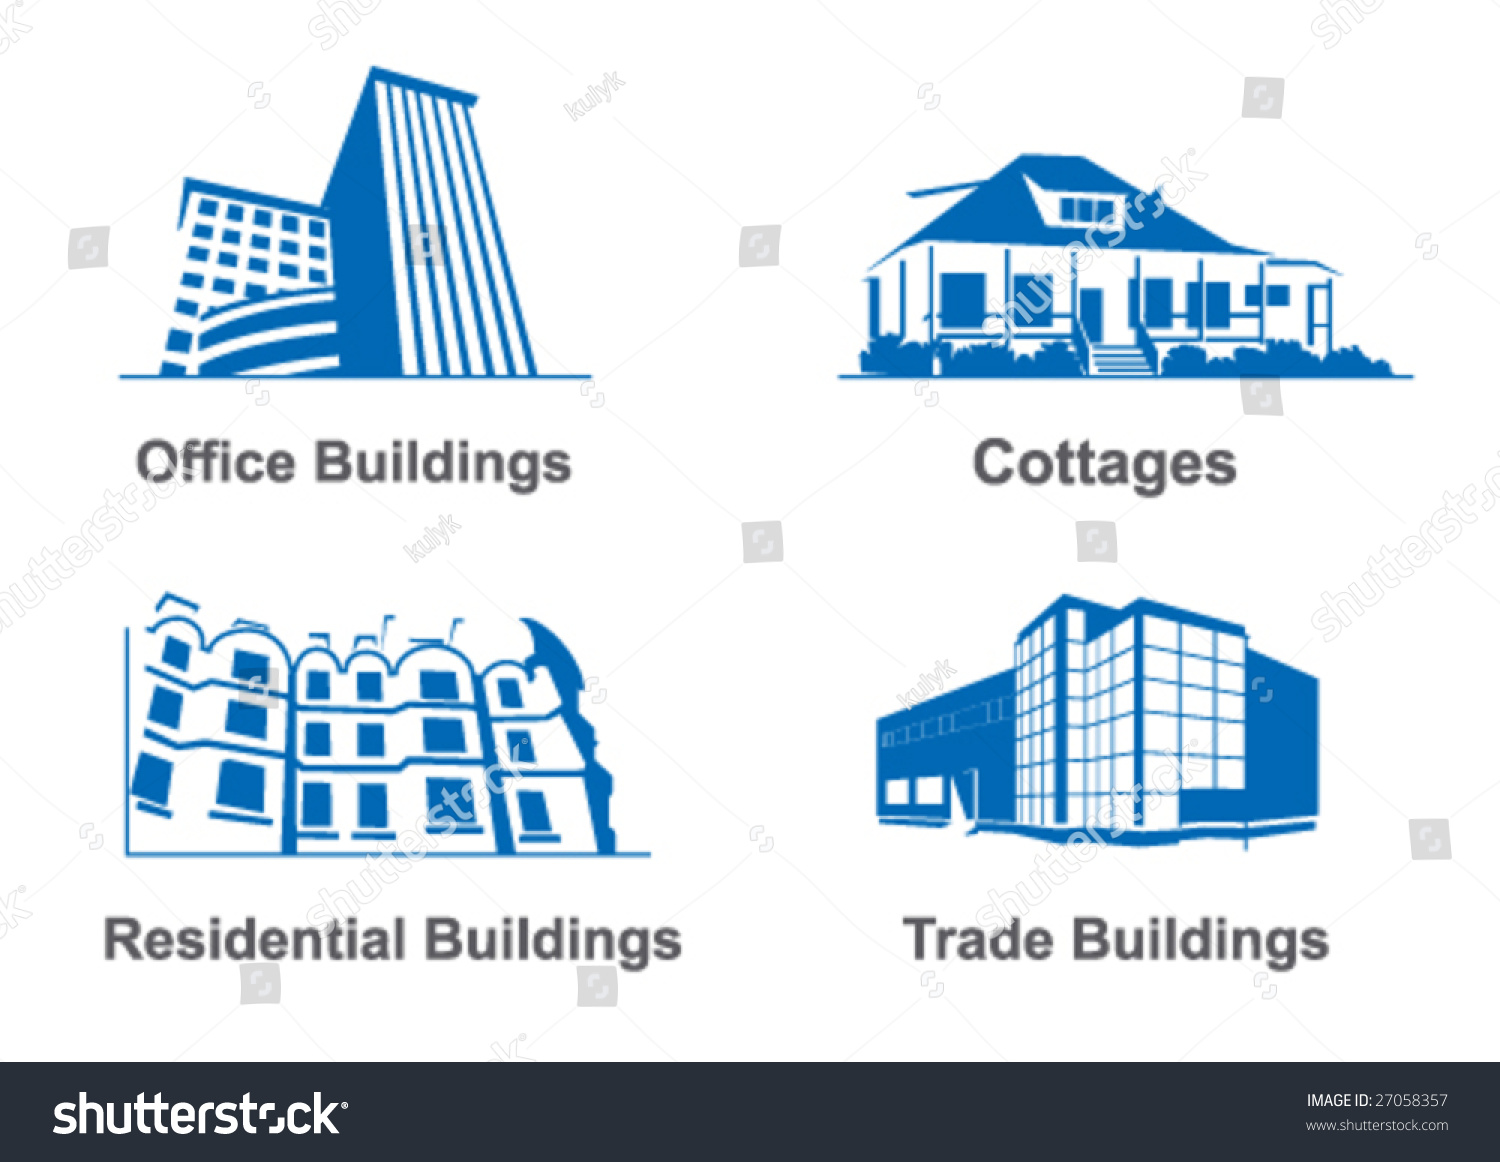 Different Types Of Buildings : Illustrations different types buildings vectores en stock